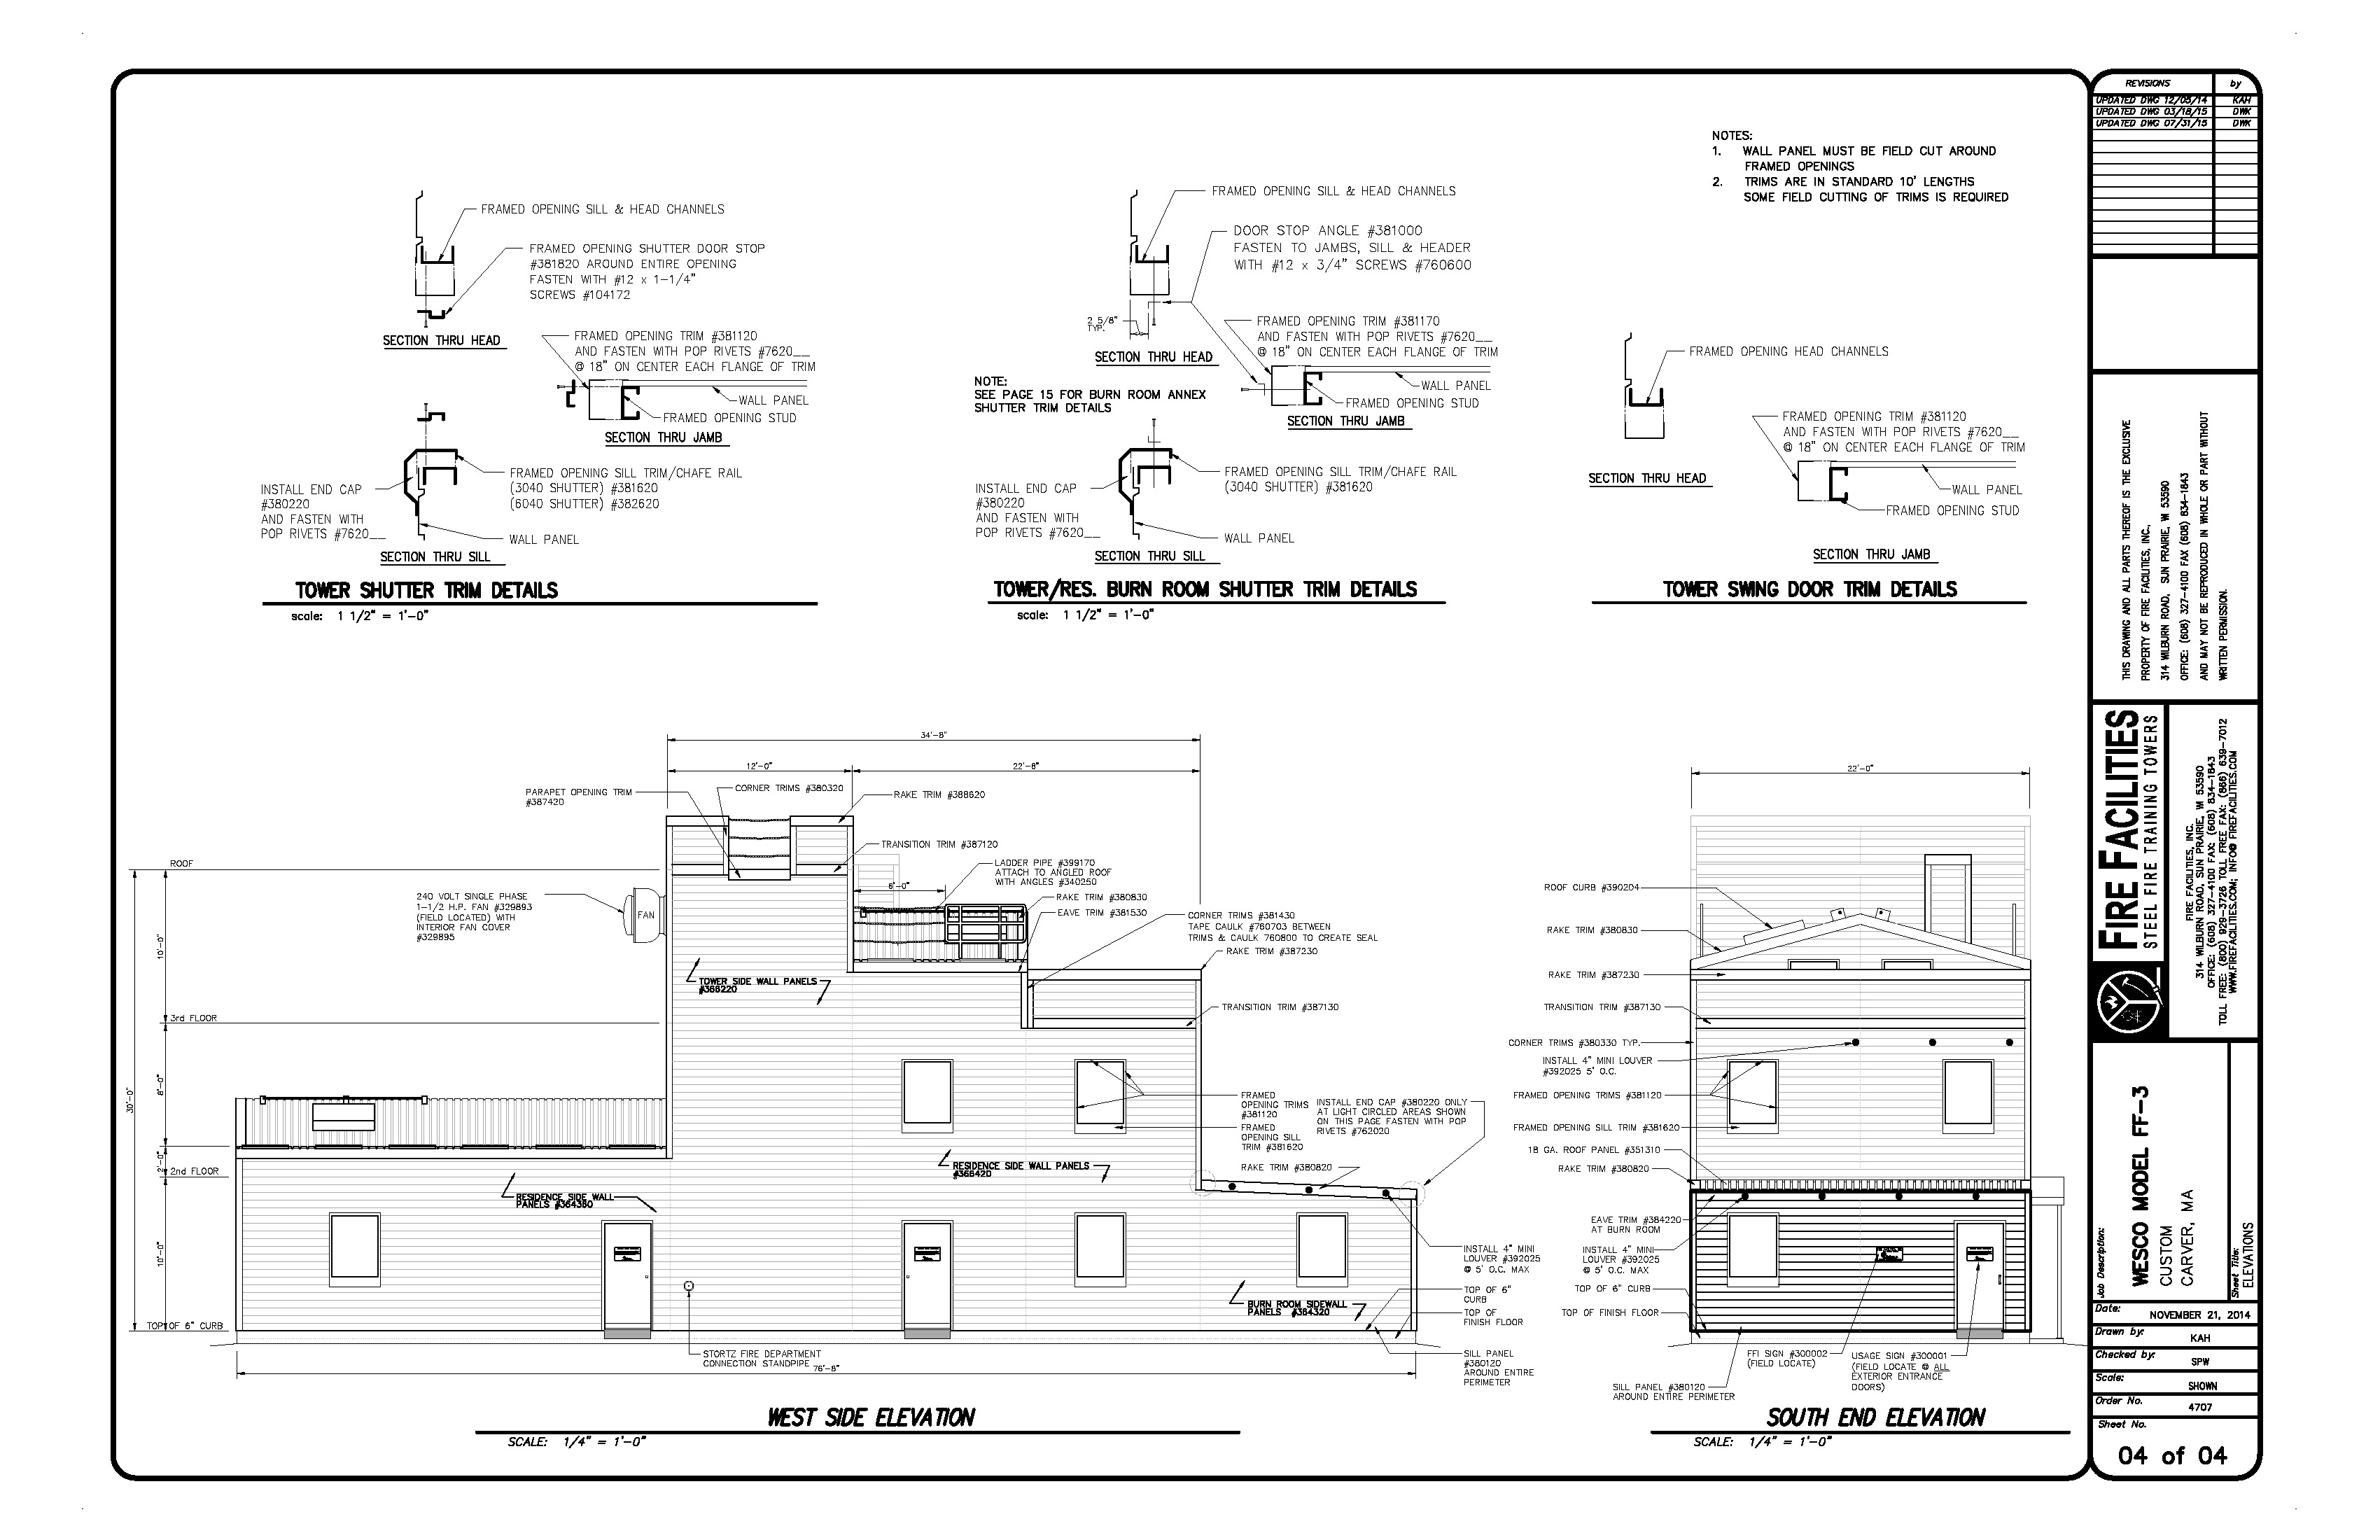 Trainng Facility Drawing 4707D_07-31-15 ATTACHMENT B_Page_4